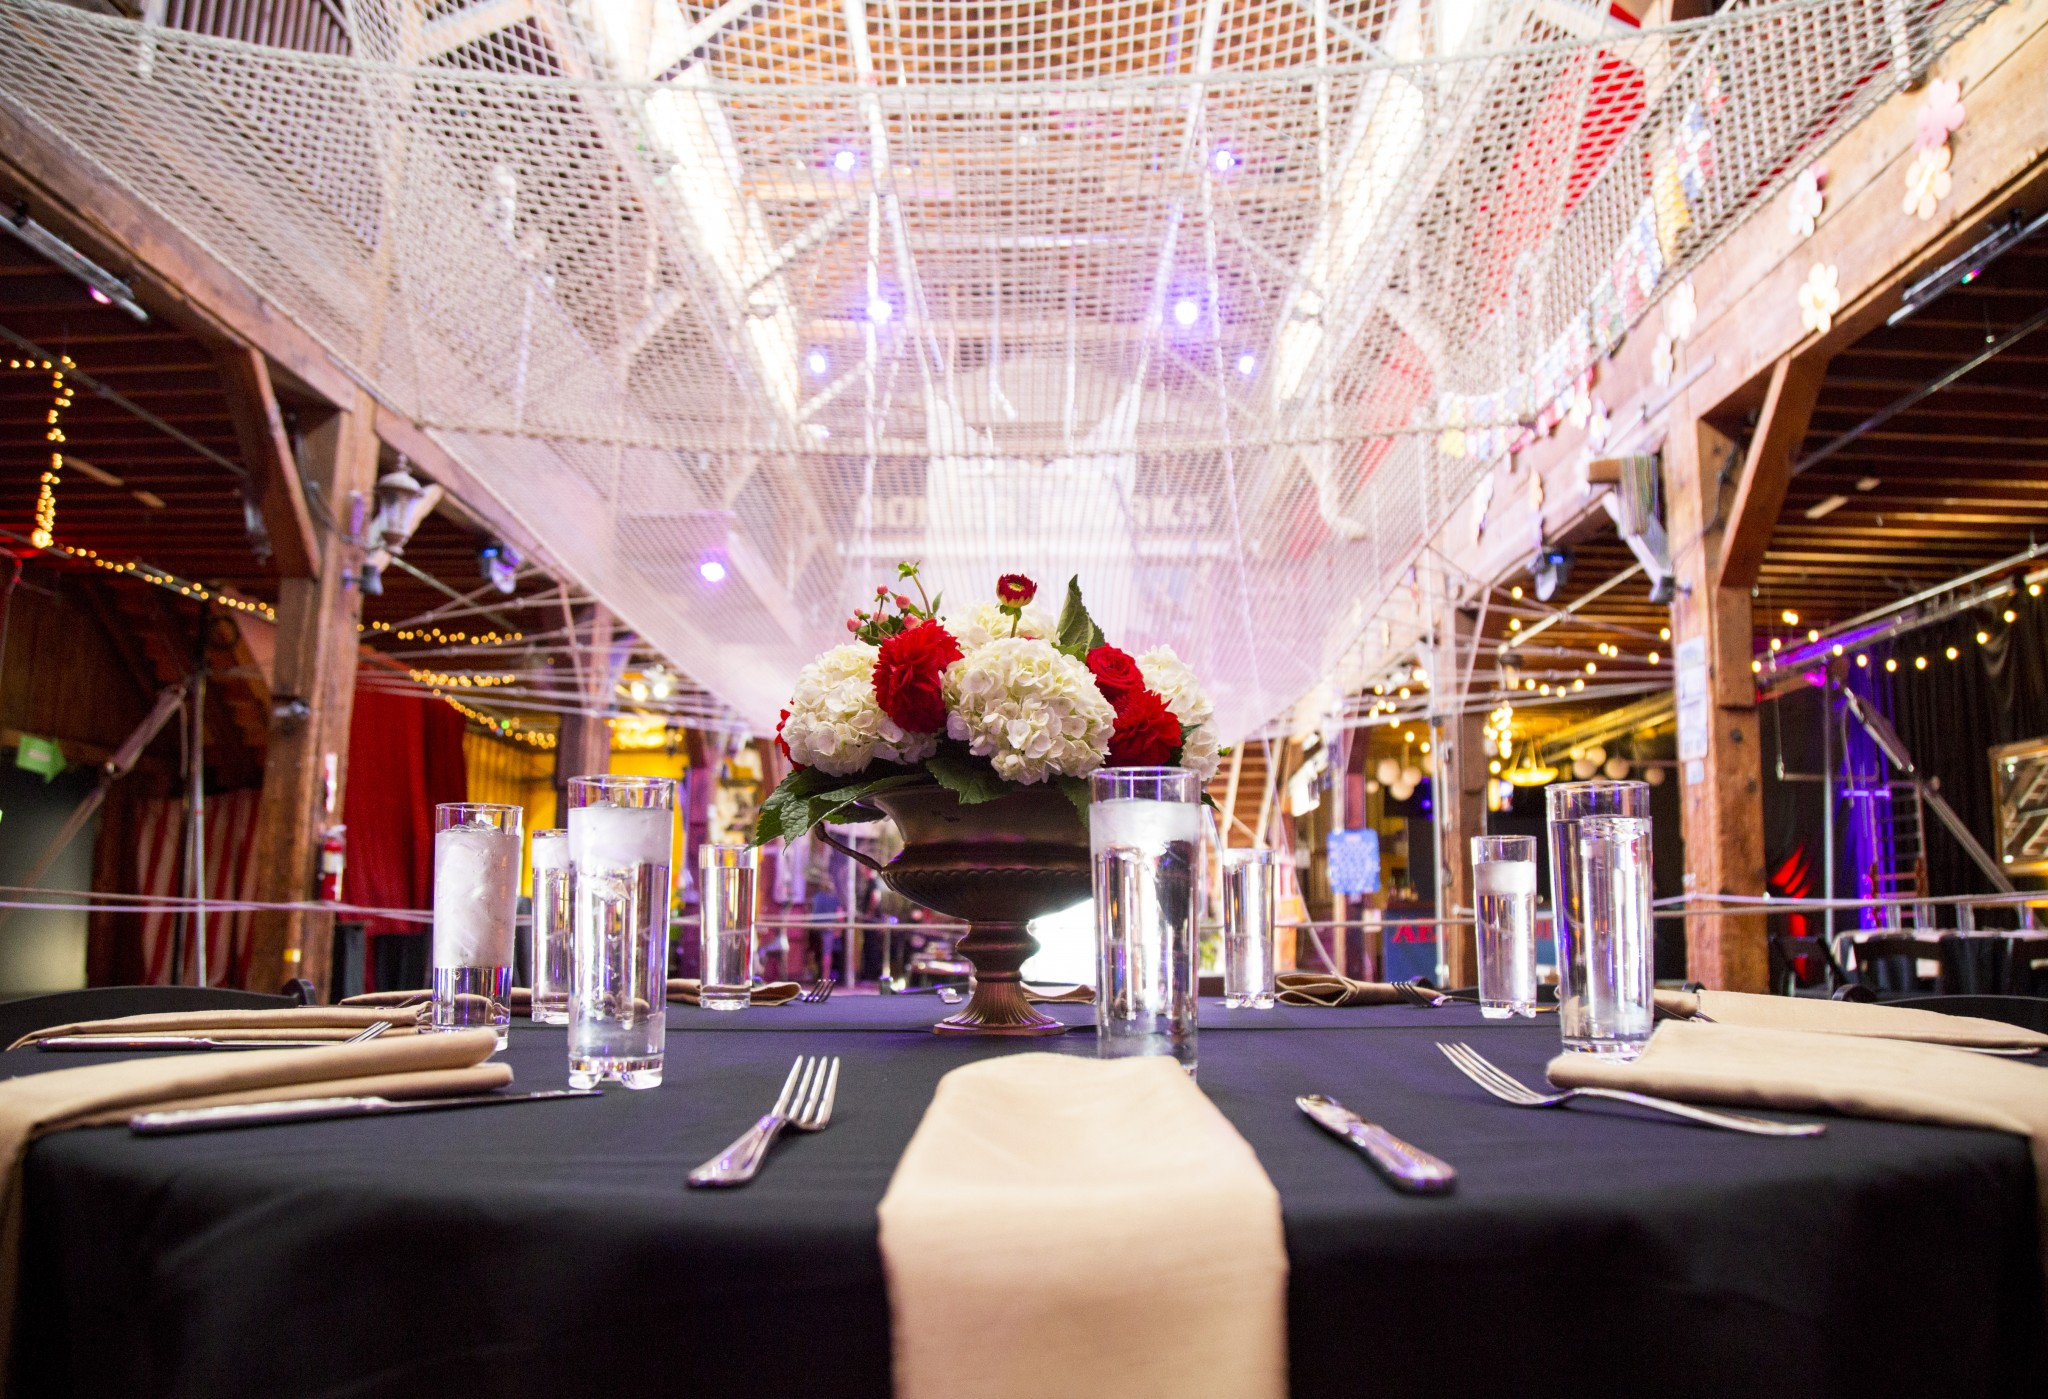 Weddings, Corporate Events, and parties at Emerald City Trapeze Arts